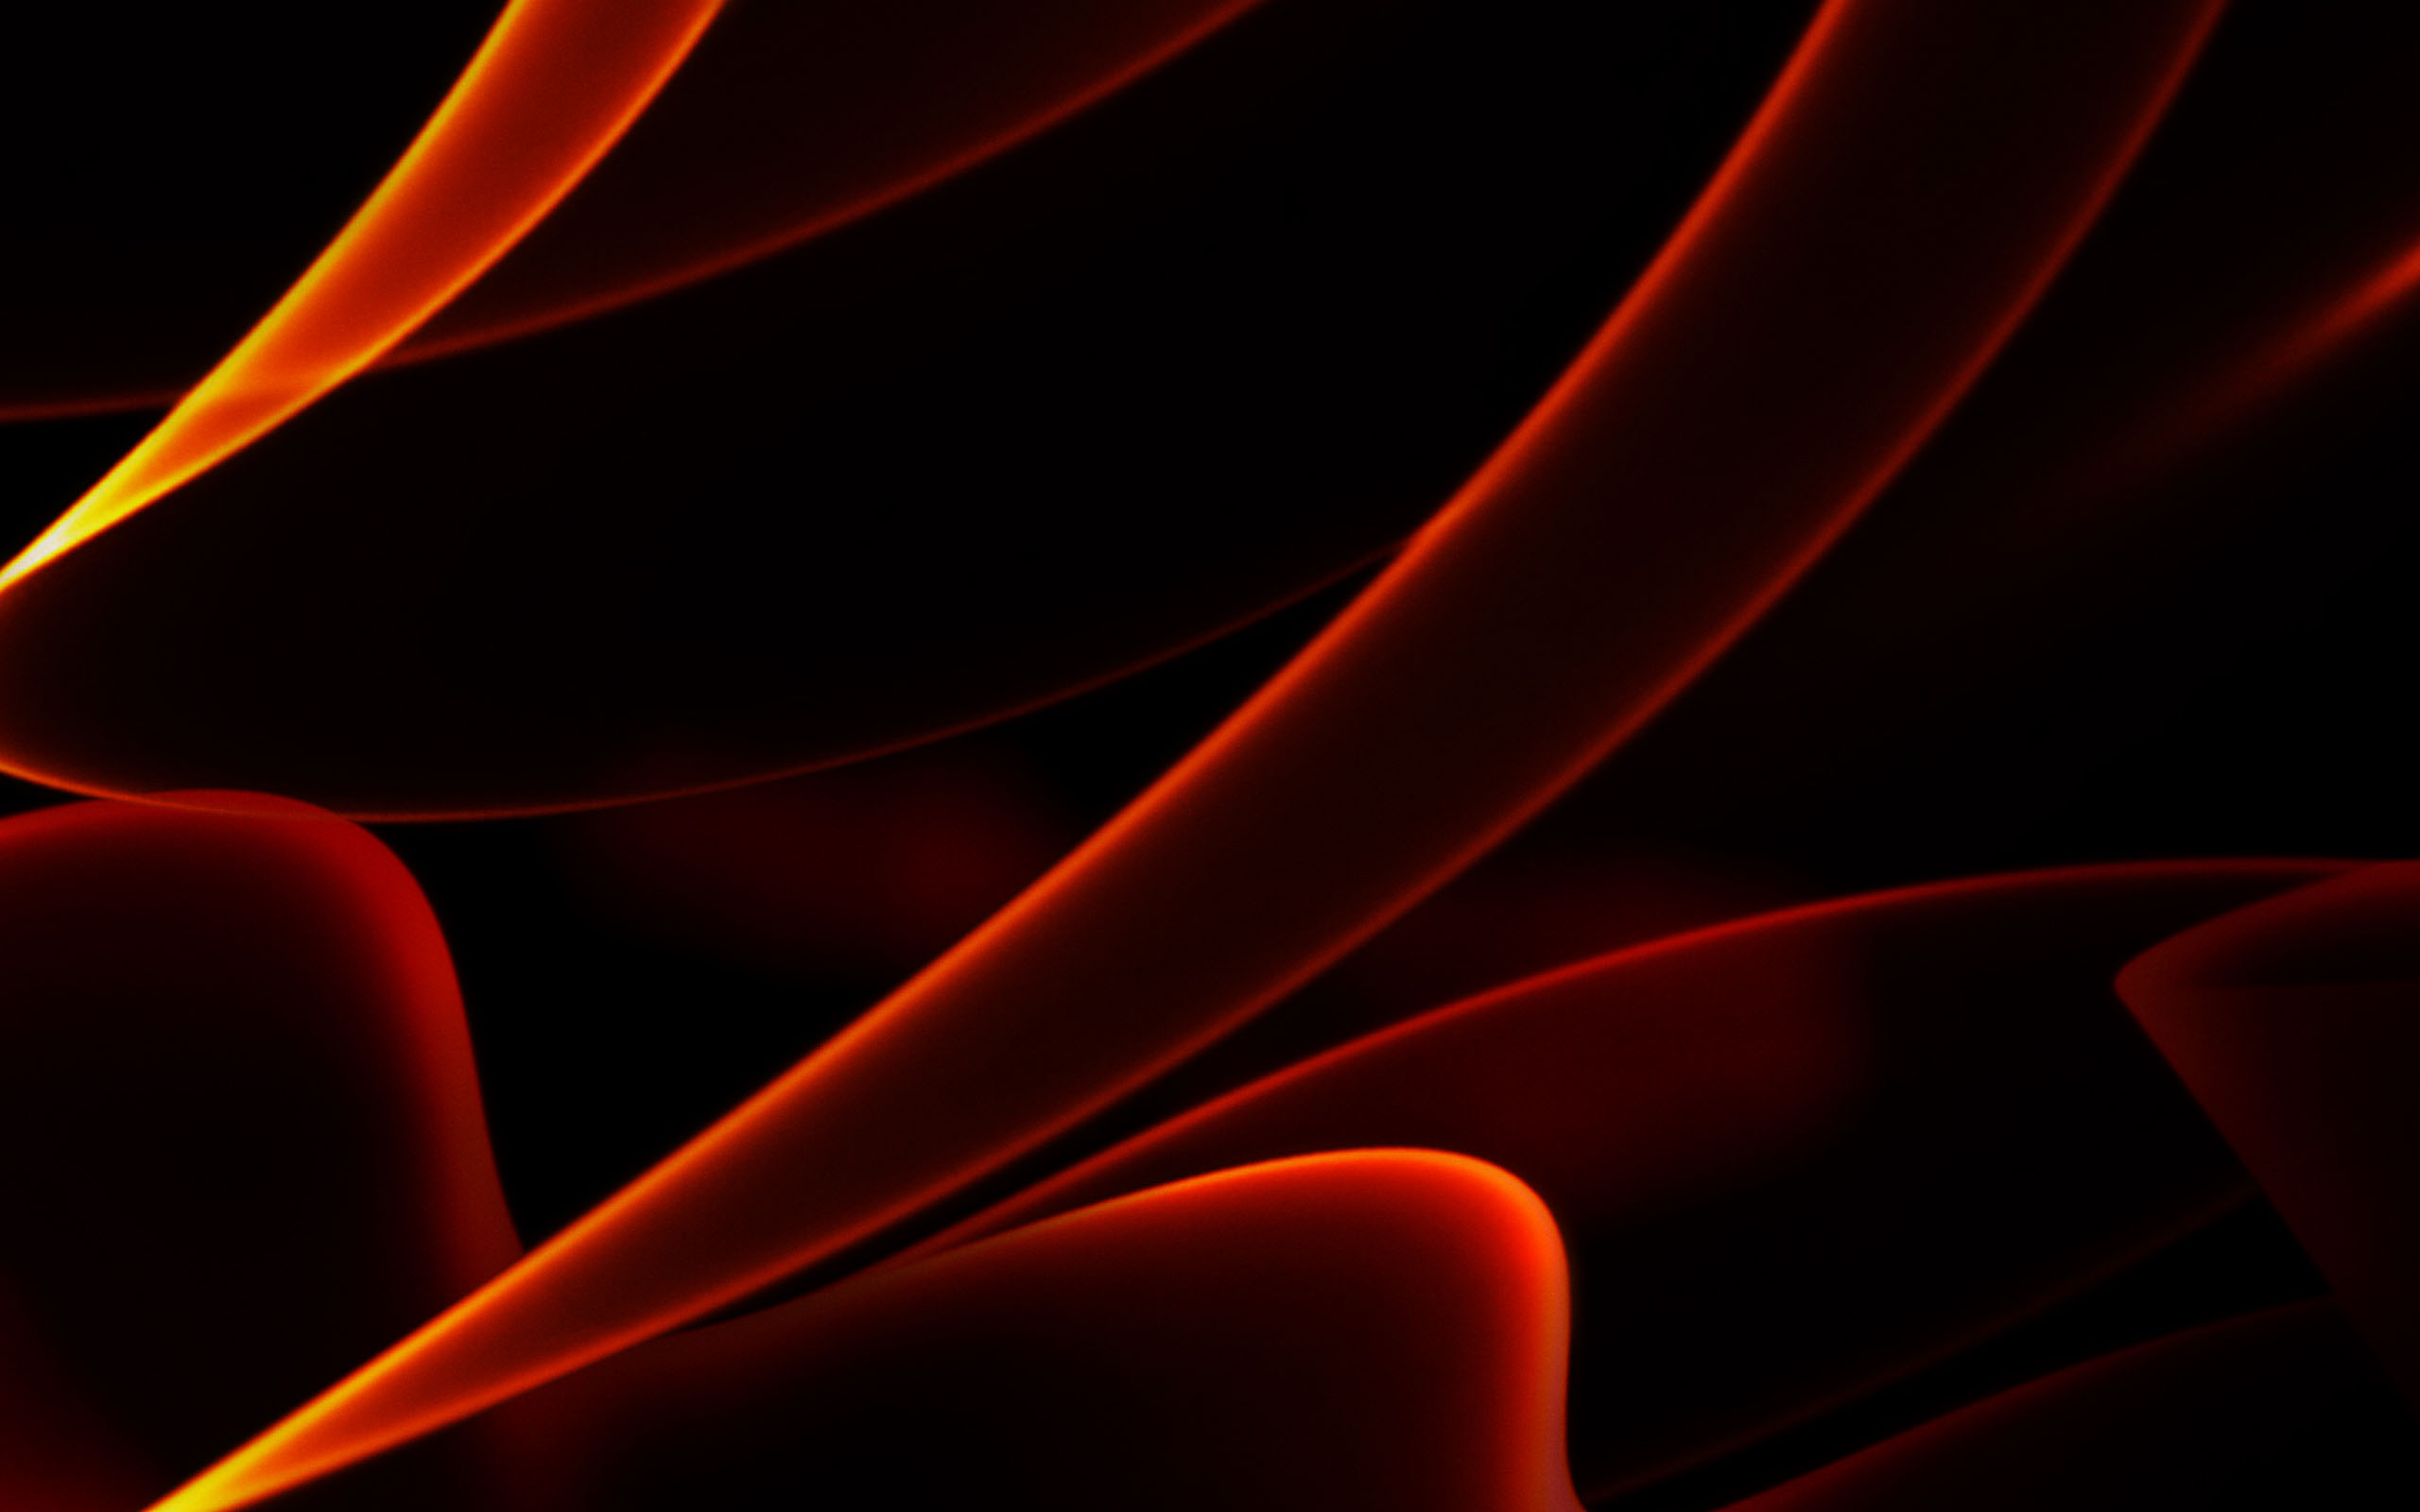 widescreen wallpaper abstract - photo #49